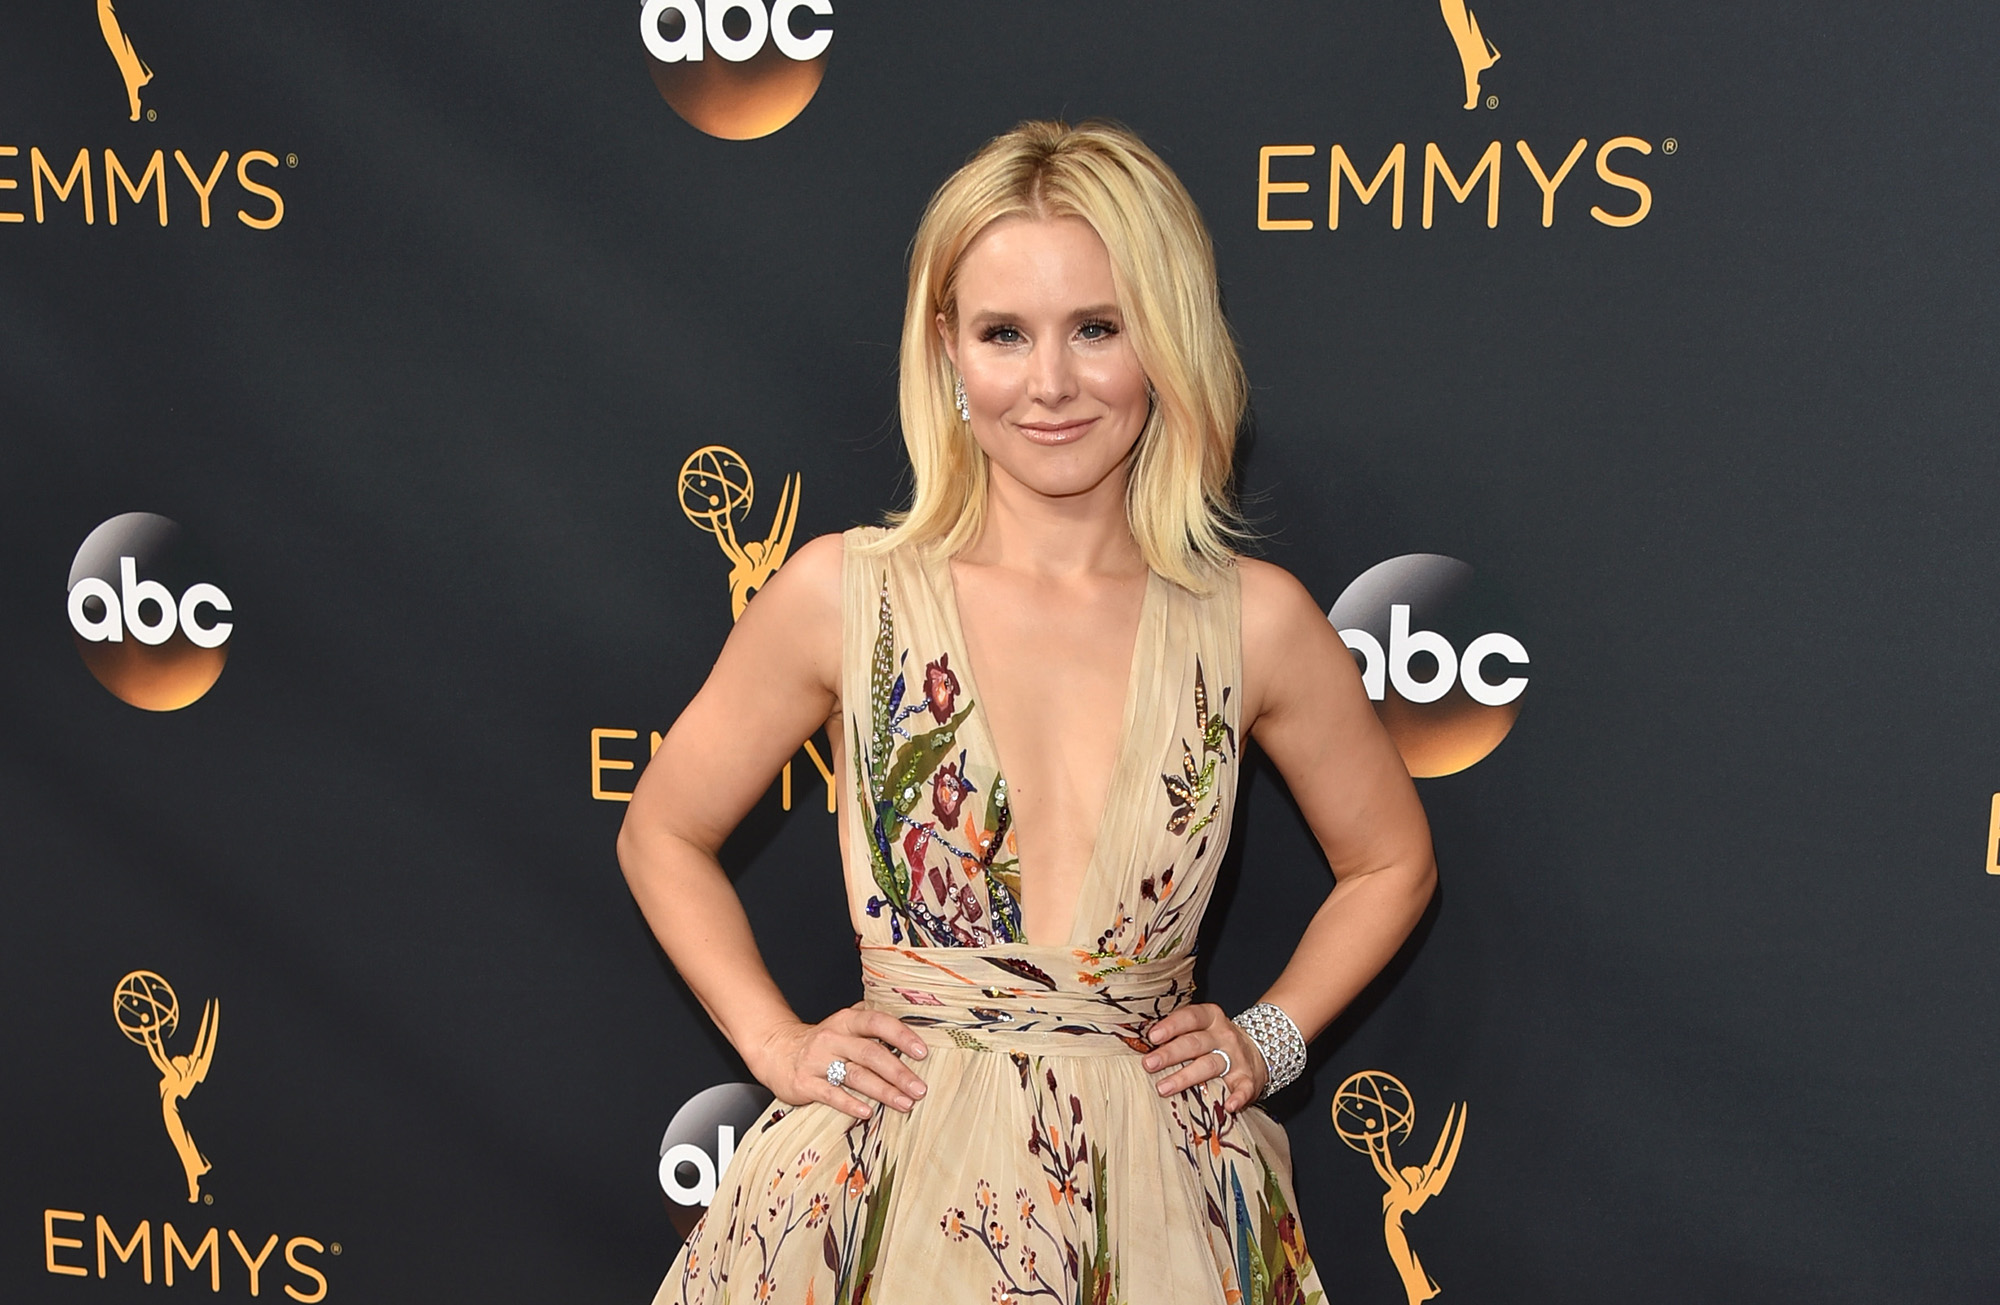 Kristen Bell arrives at the 68th Annual Primetime Emmy Awards at Microsoft Theater on September 18, 2016 in Los Angeles, California.  (Photo by John Shearer/WireImage)